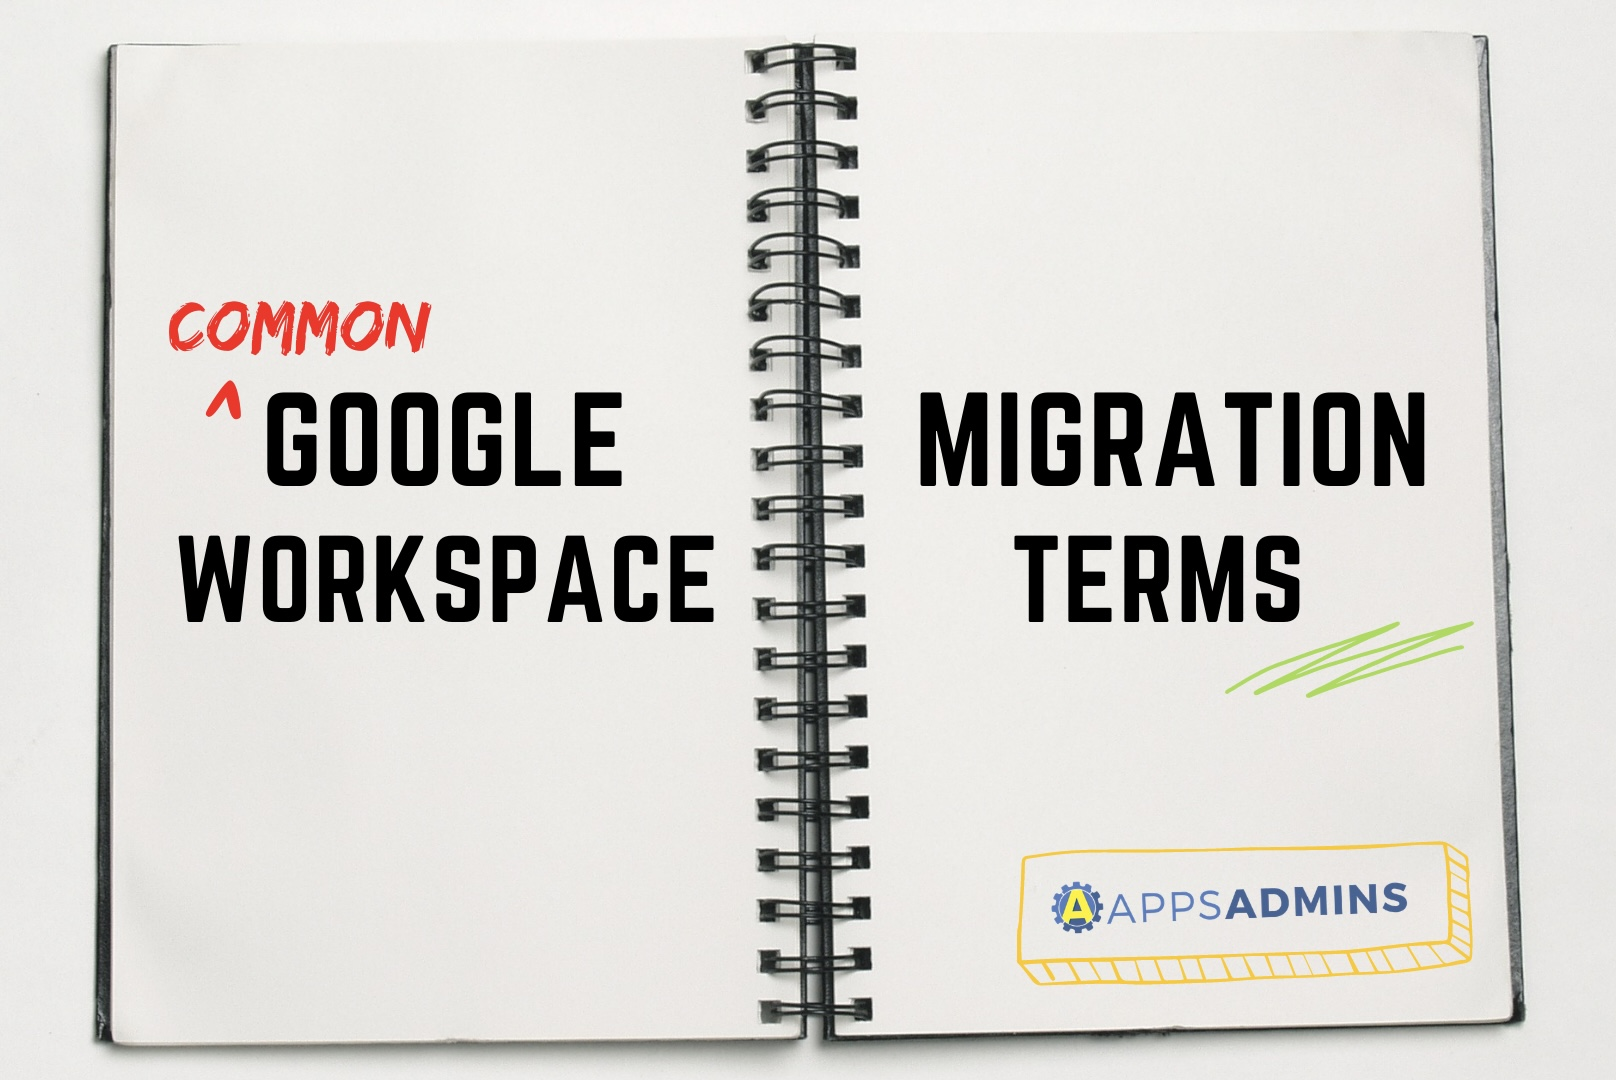 Google Workspace Migration Terms